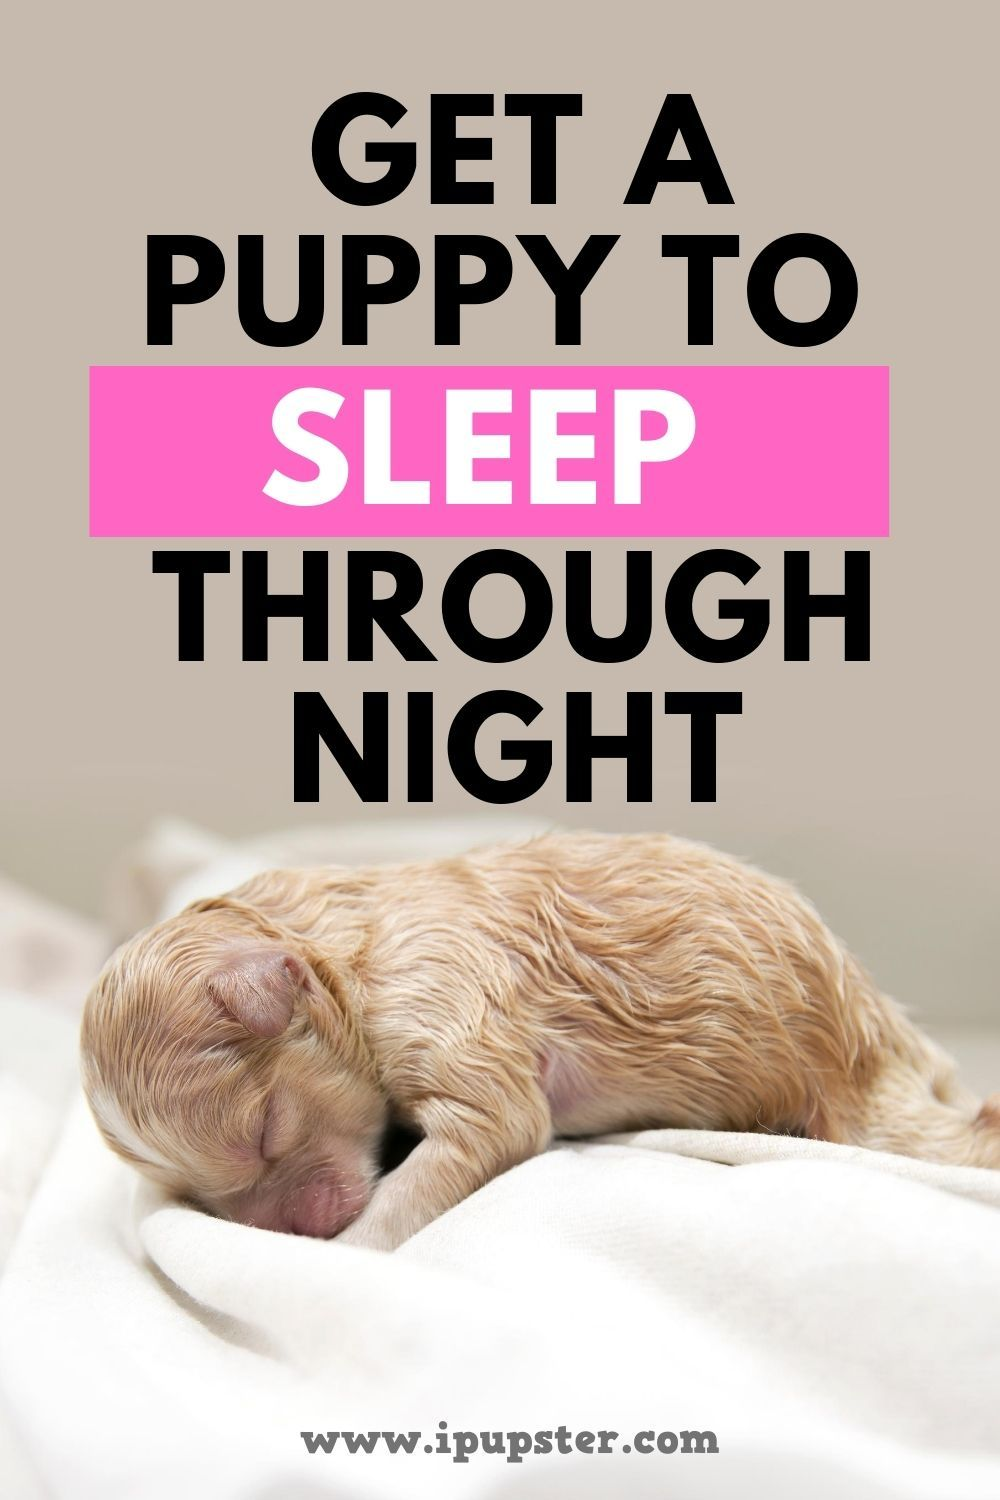 How To Get A Puppy To Sleep Through The Night In 2020 Sleeping Puppies Getting A Puppy Puppies